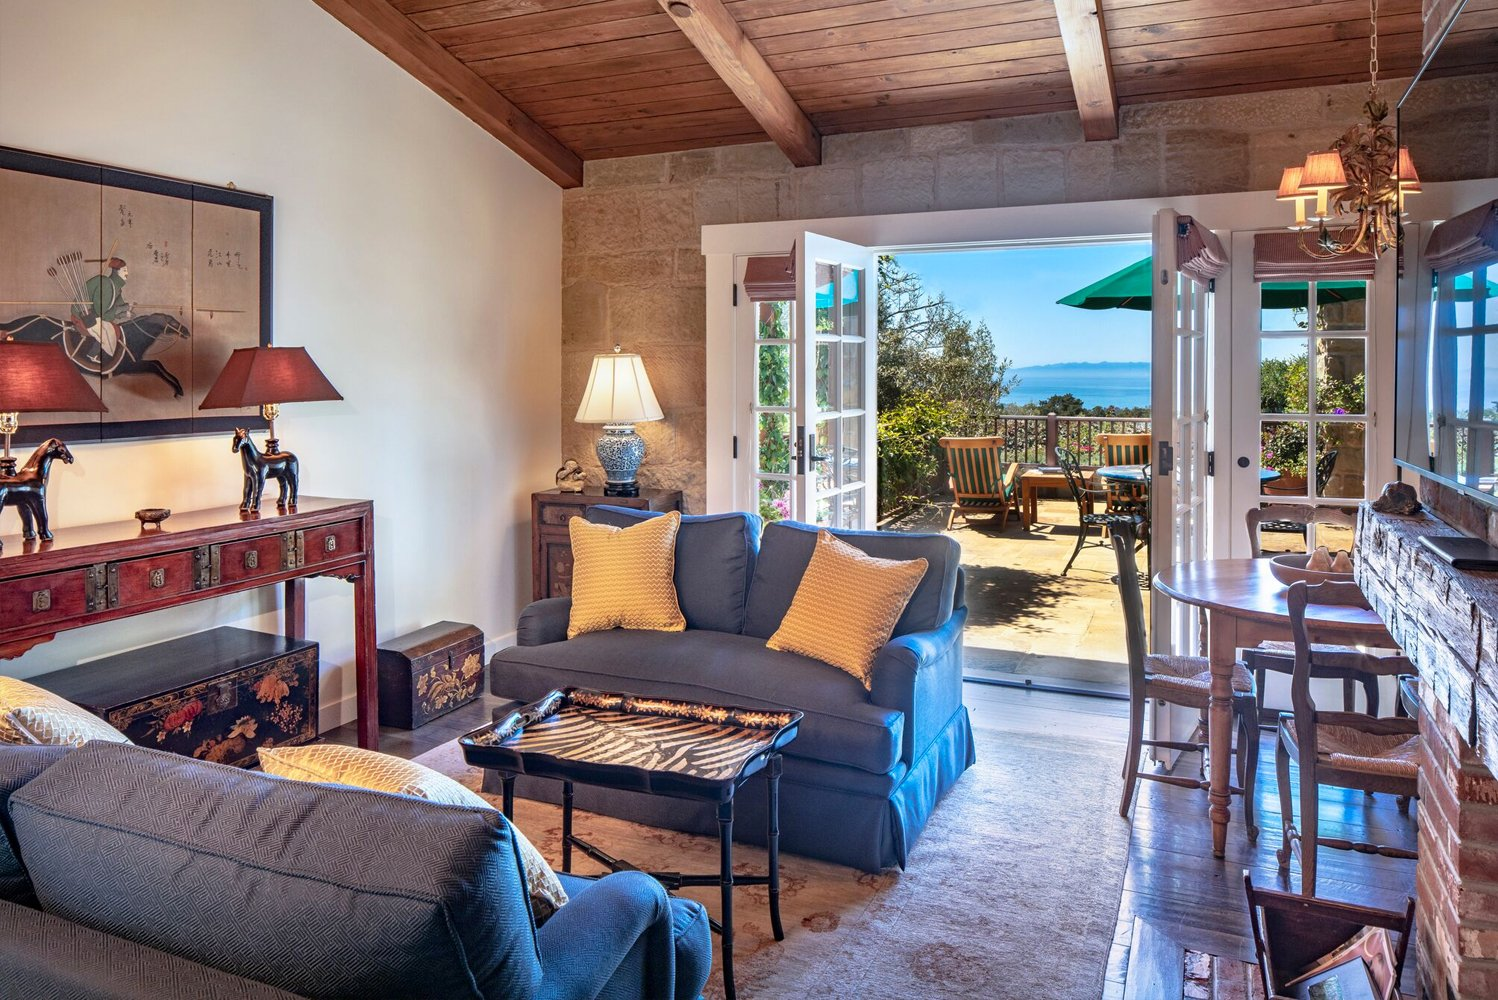 The living room has antiques and French doors that open onto the largest private deck overlooking the Pacific Ocean and Channel Islands.